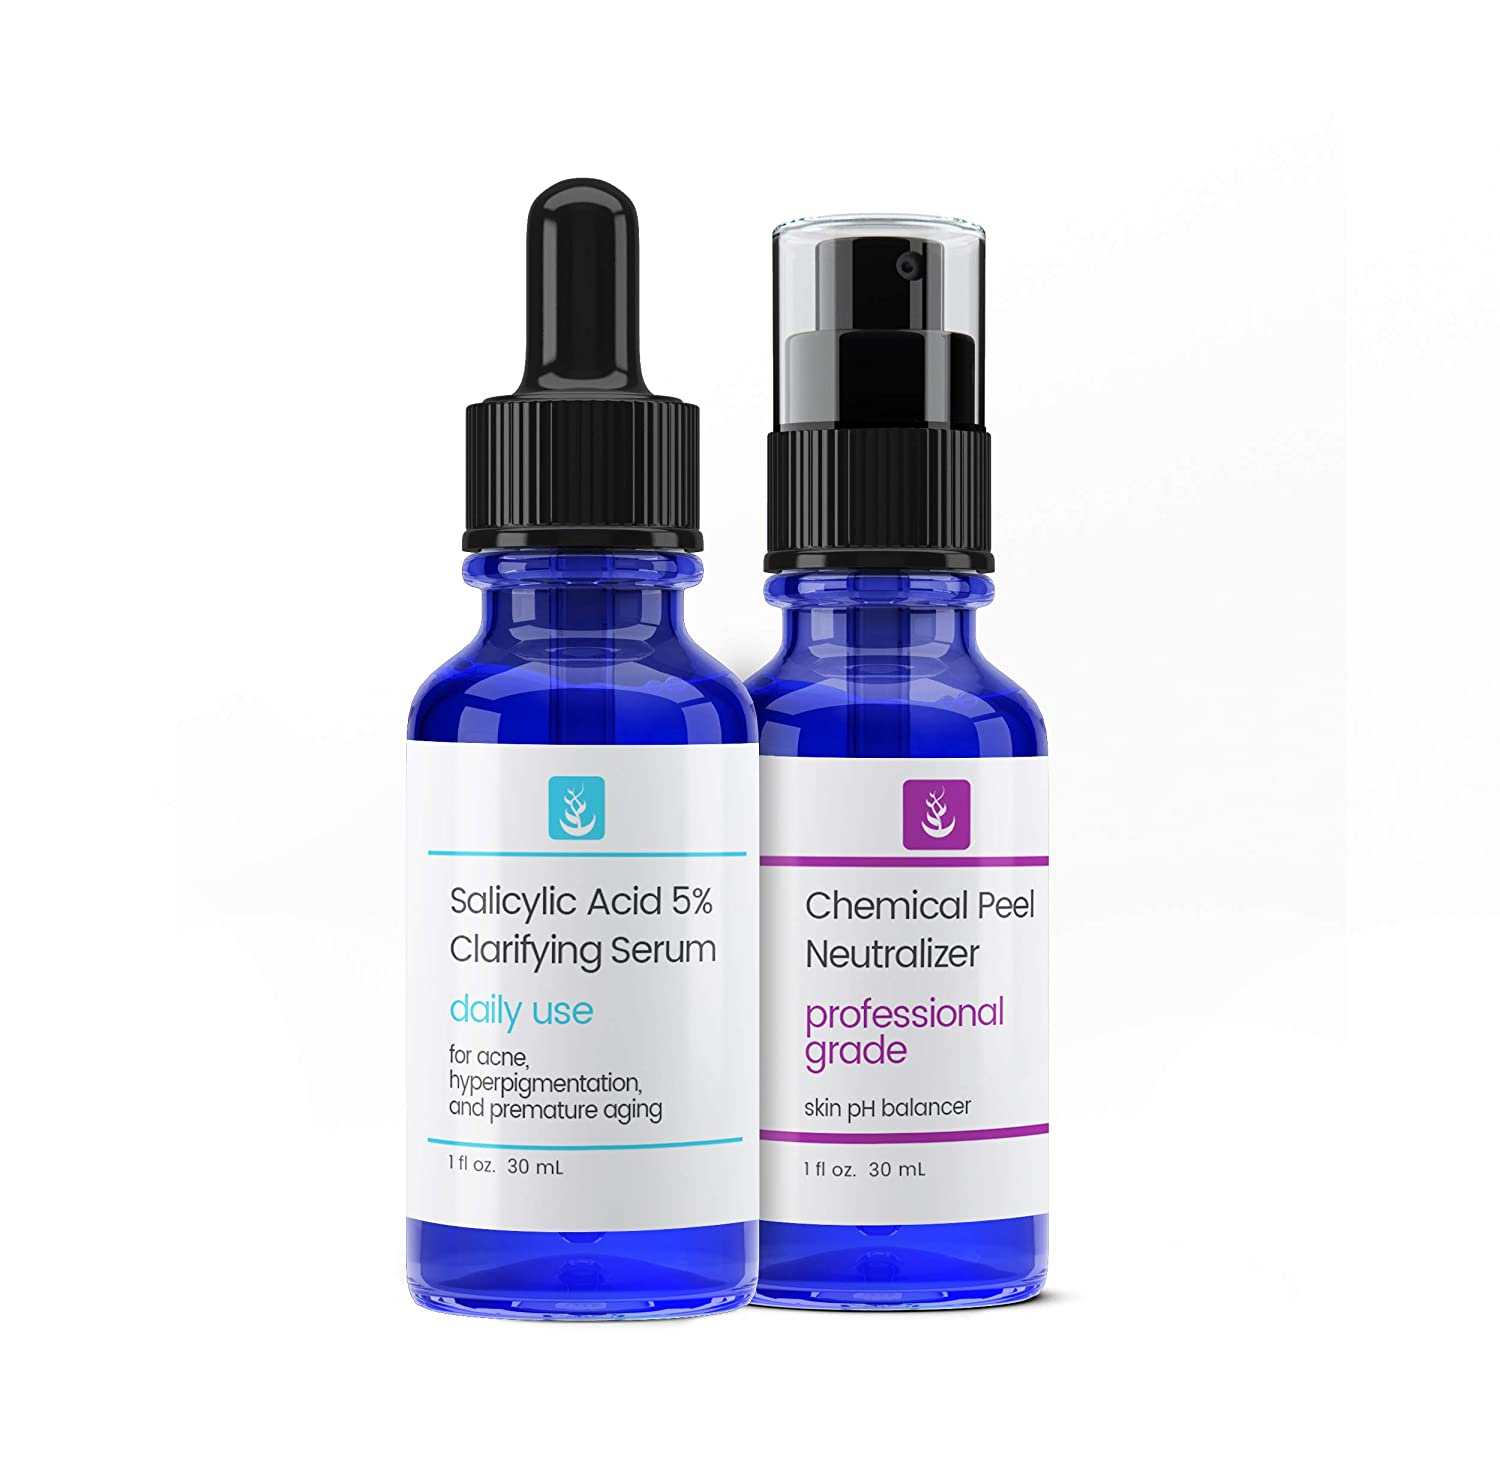 Salicylic Acid 5% Solution & Neutralizer (30 ml each) by Pure Ingredients, Daily Use Facial Serum, Effective Yet Gentle, Treats Acne, Hyper-Pigmentation, & Premature Aging